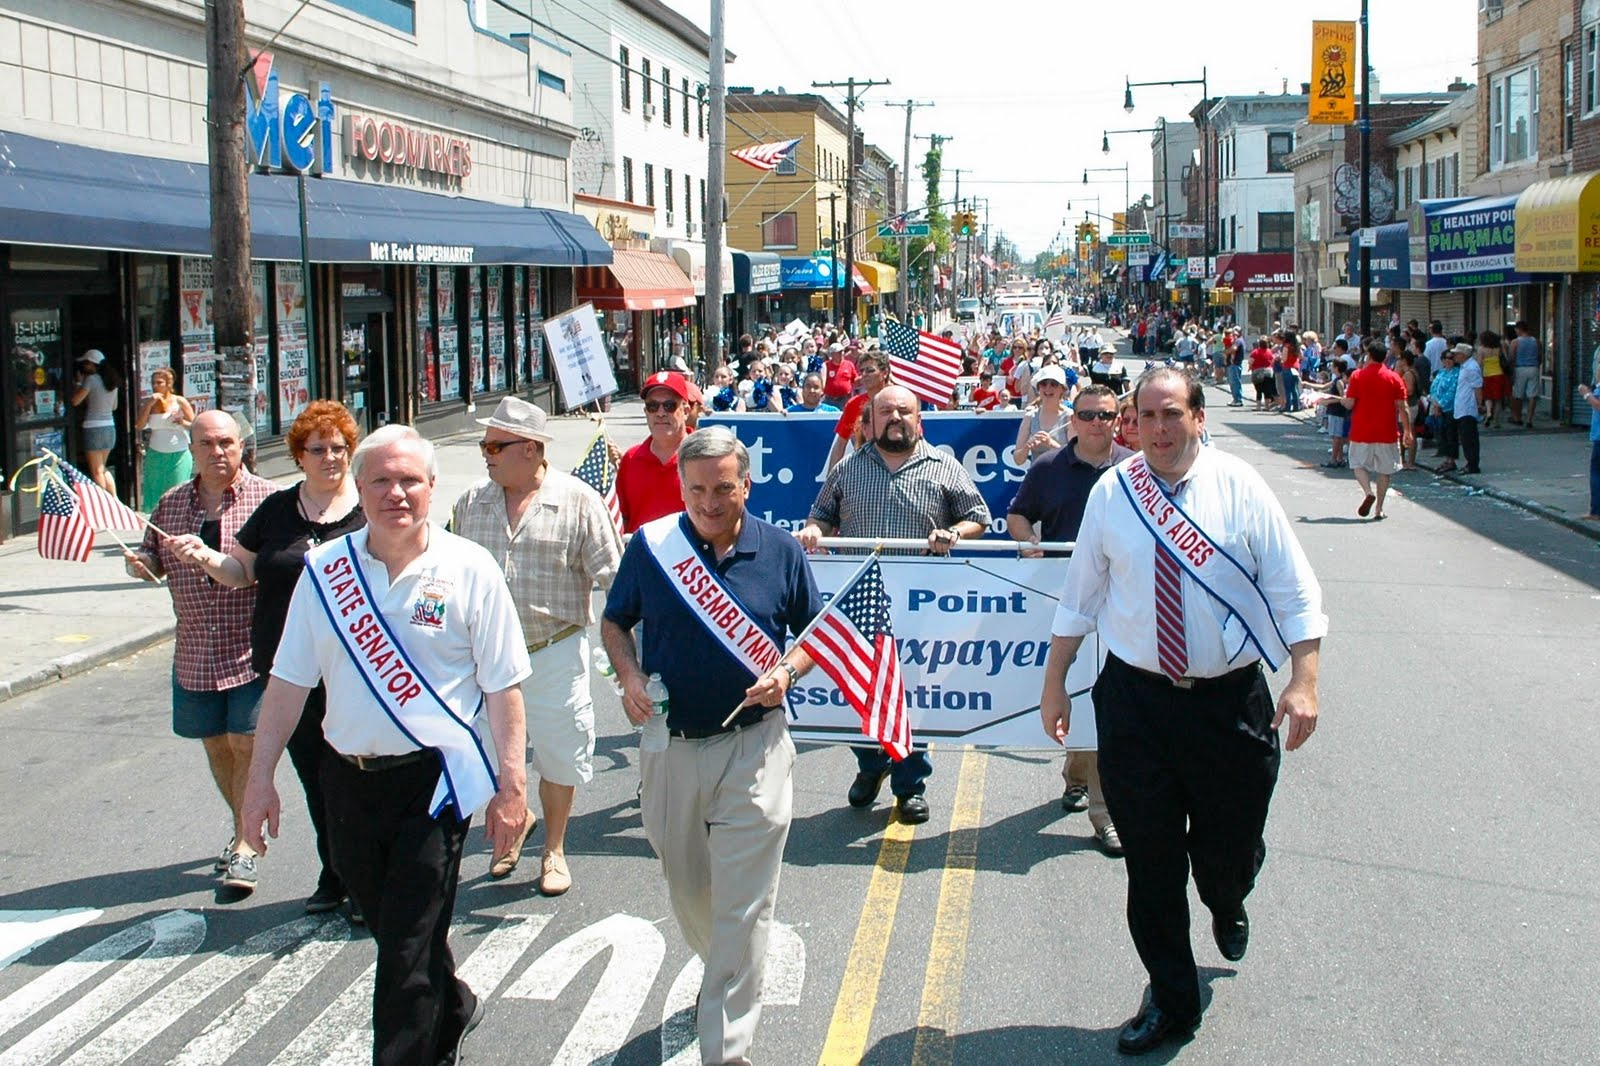 College Point Citizens for Memorial Day Parade